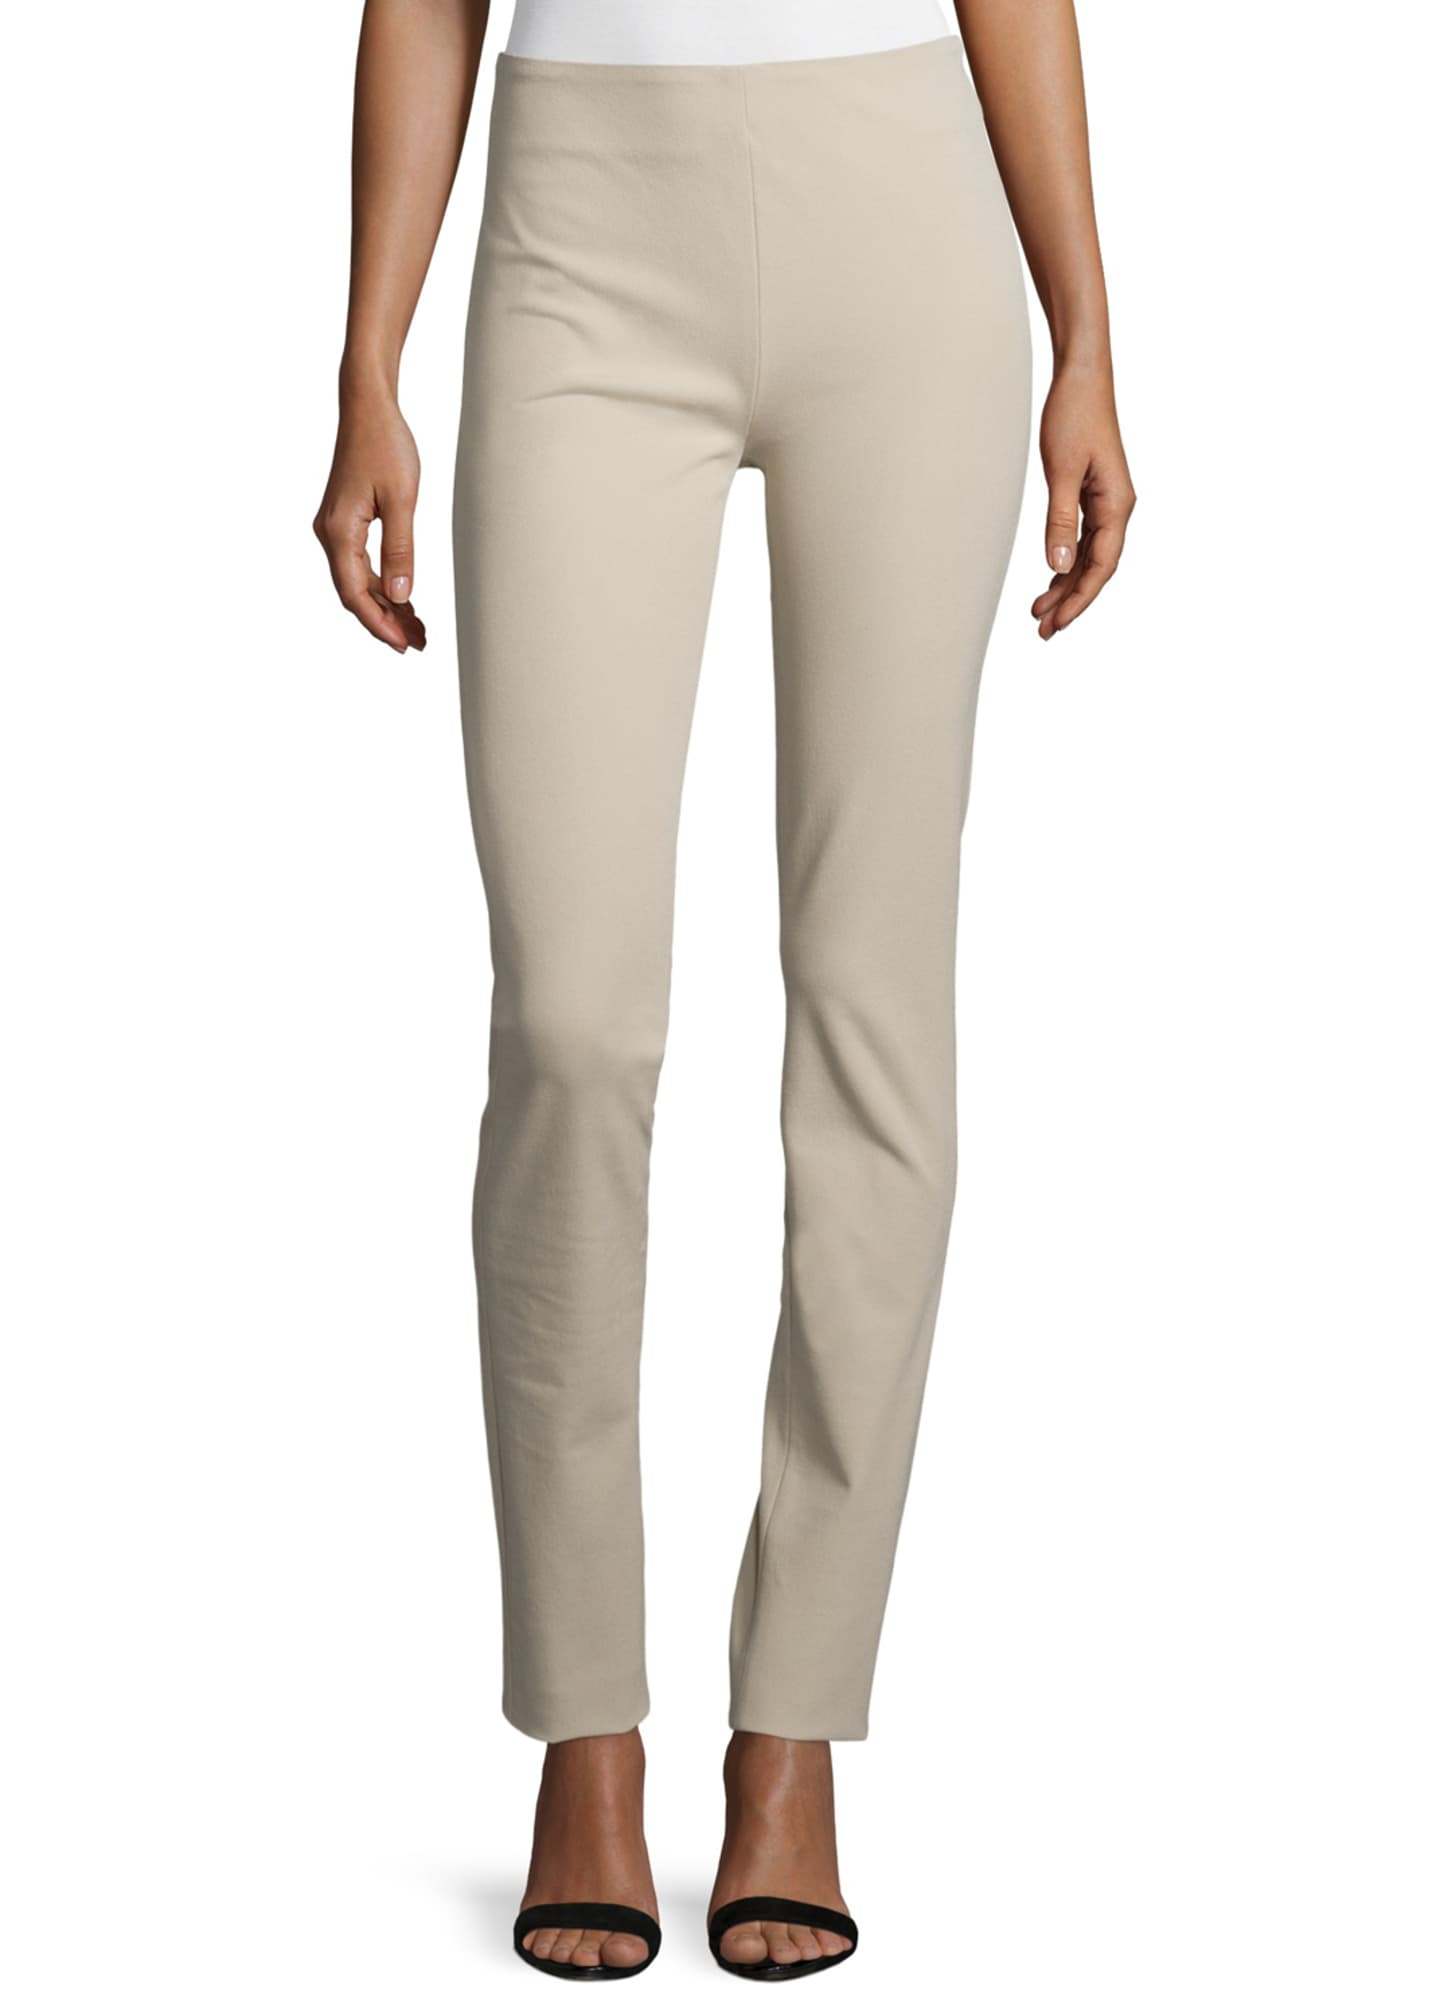 Joseph Tony Skinny Stretch Ankle Pants